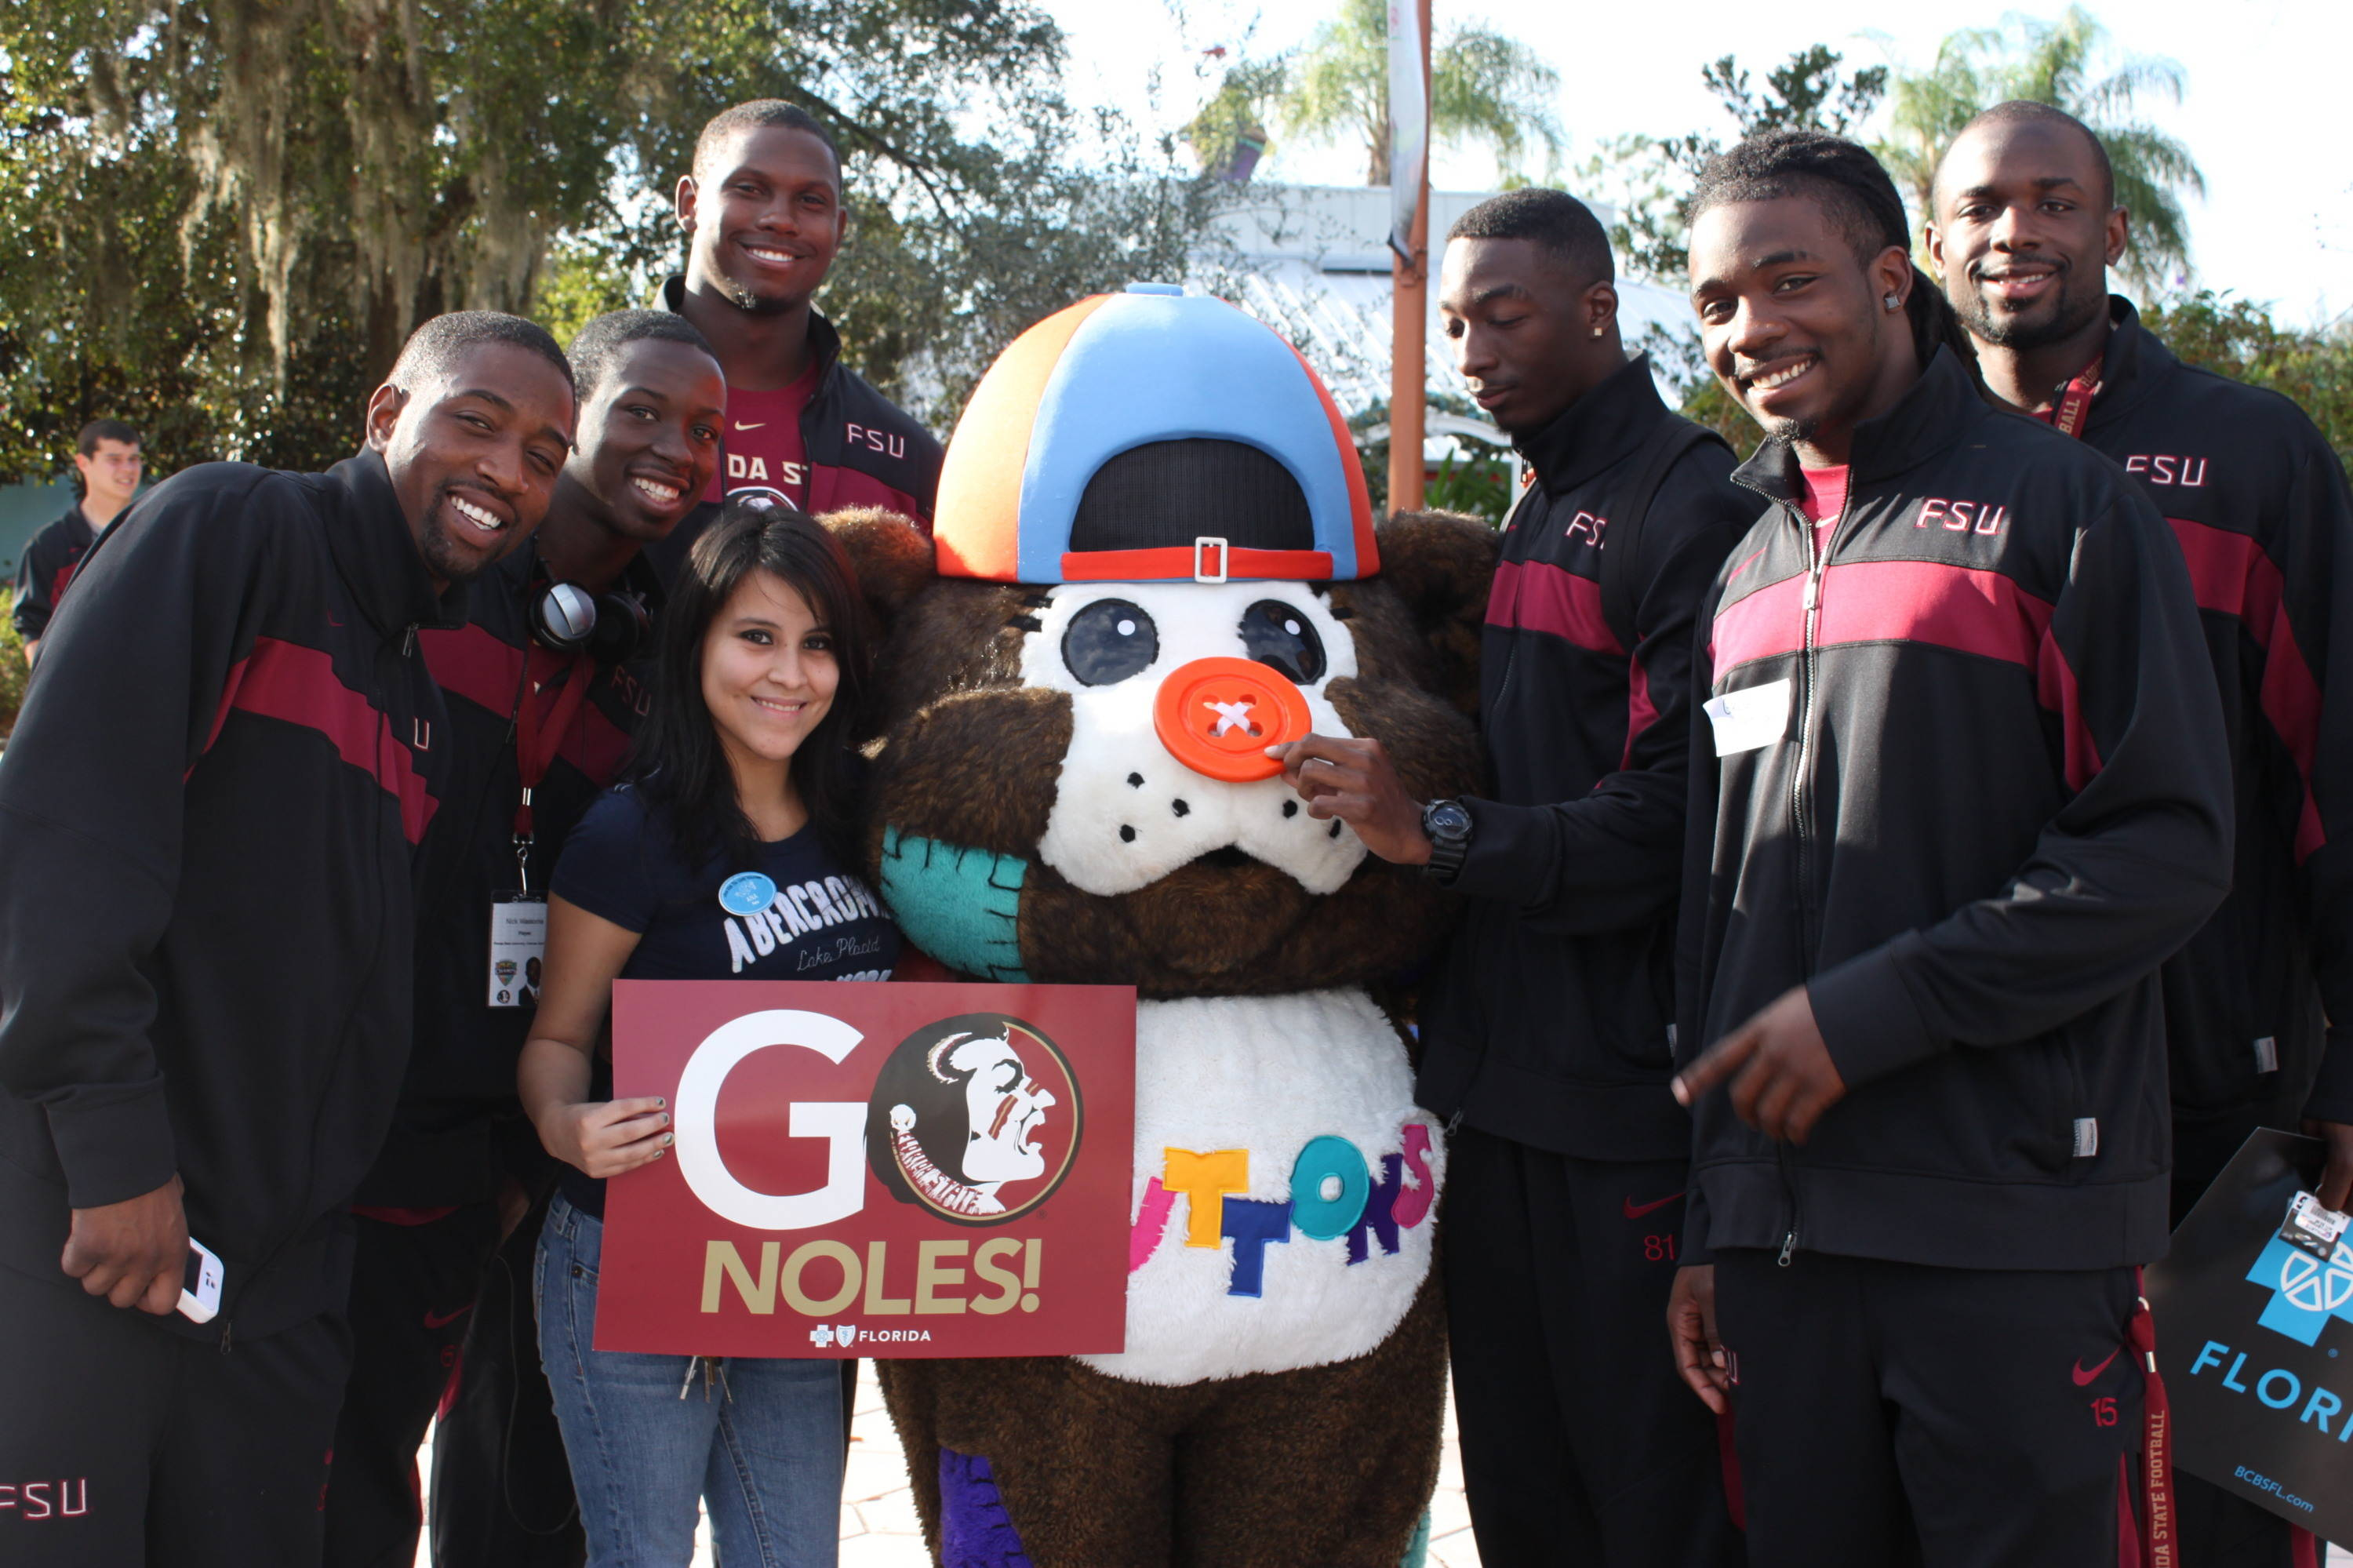 The Seminoles found a fuzzy friend and a park volunteer to mug for the camera.